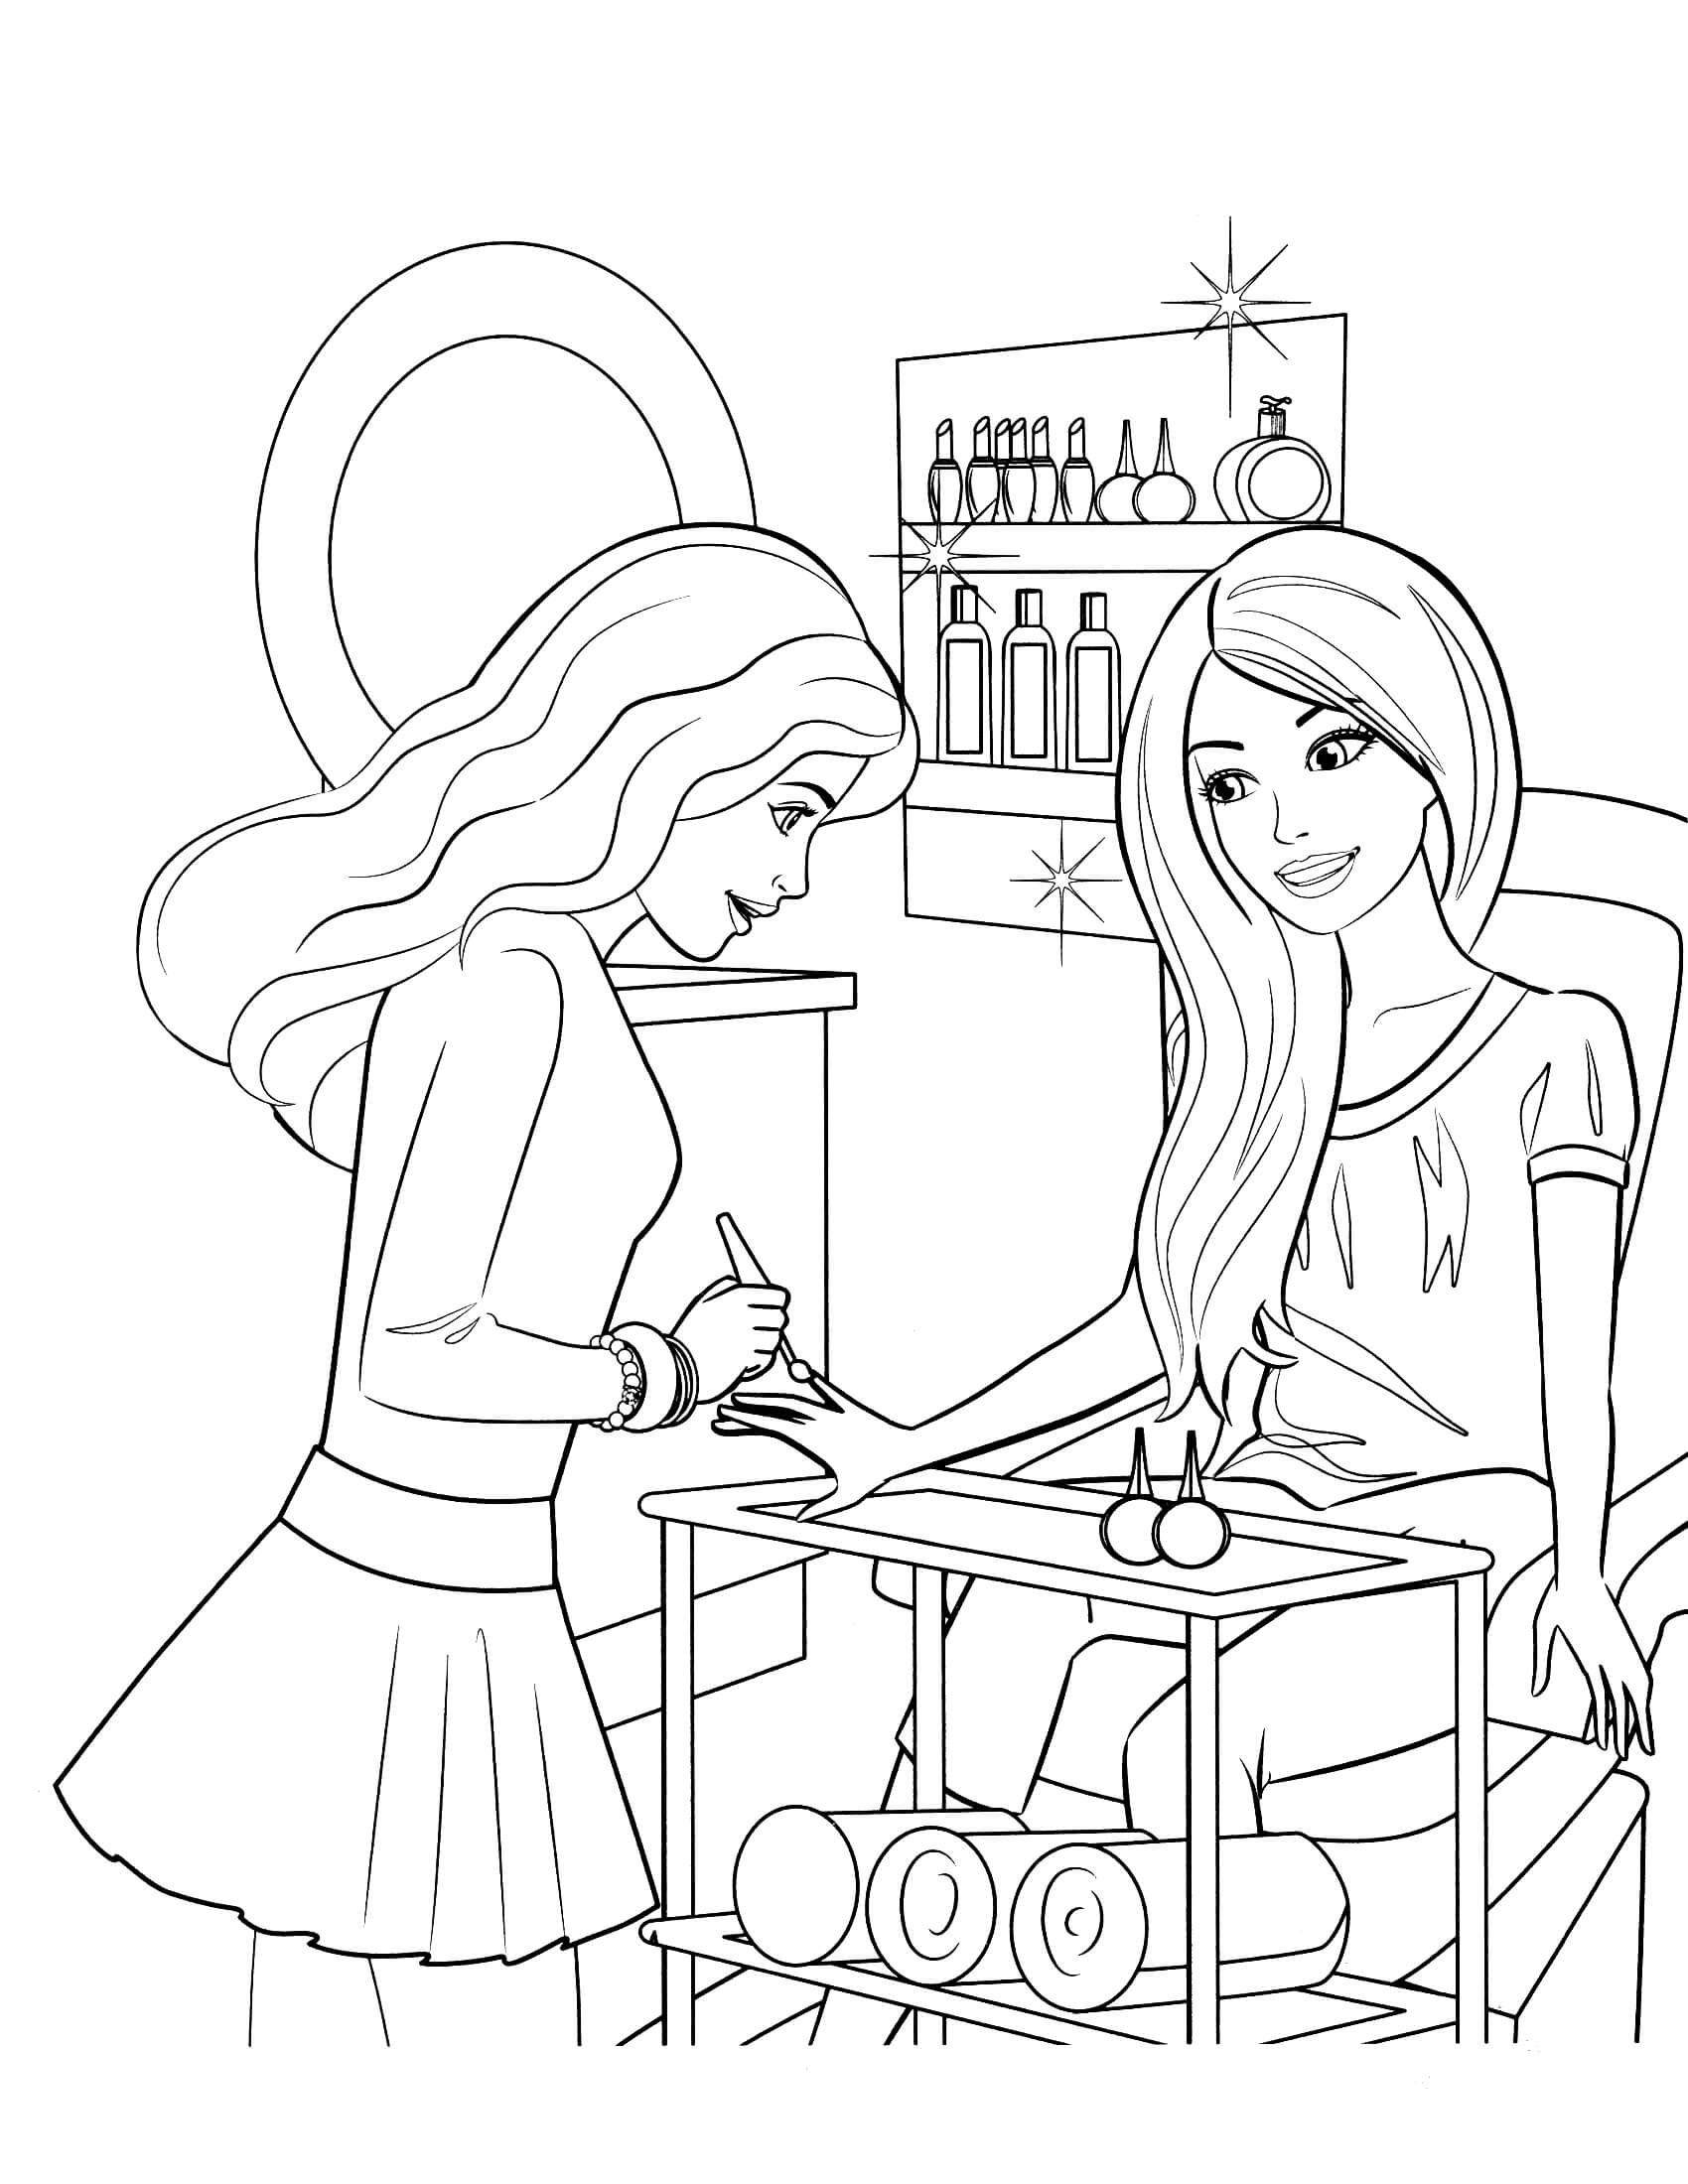 barbie doll colouring coloring pages barbie free printable coloring pages barbie doll colouring